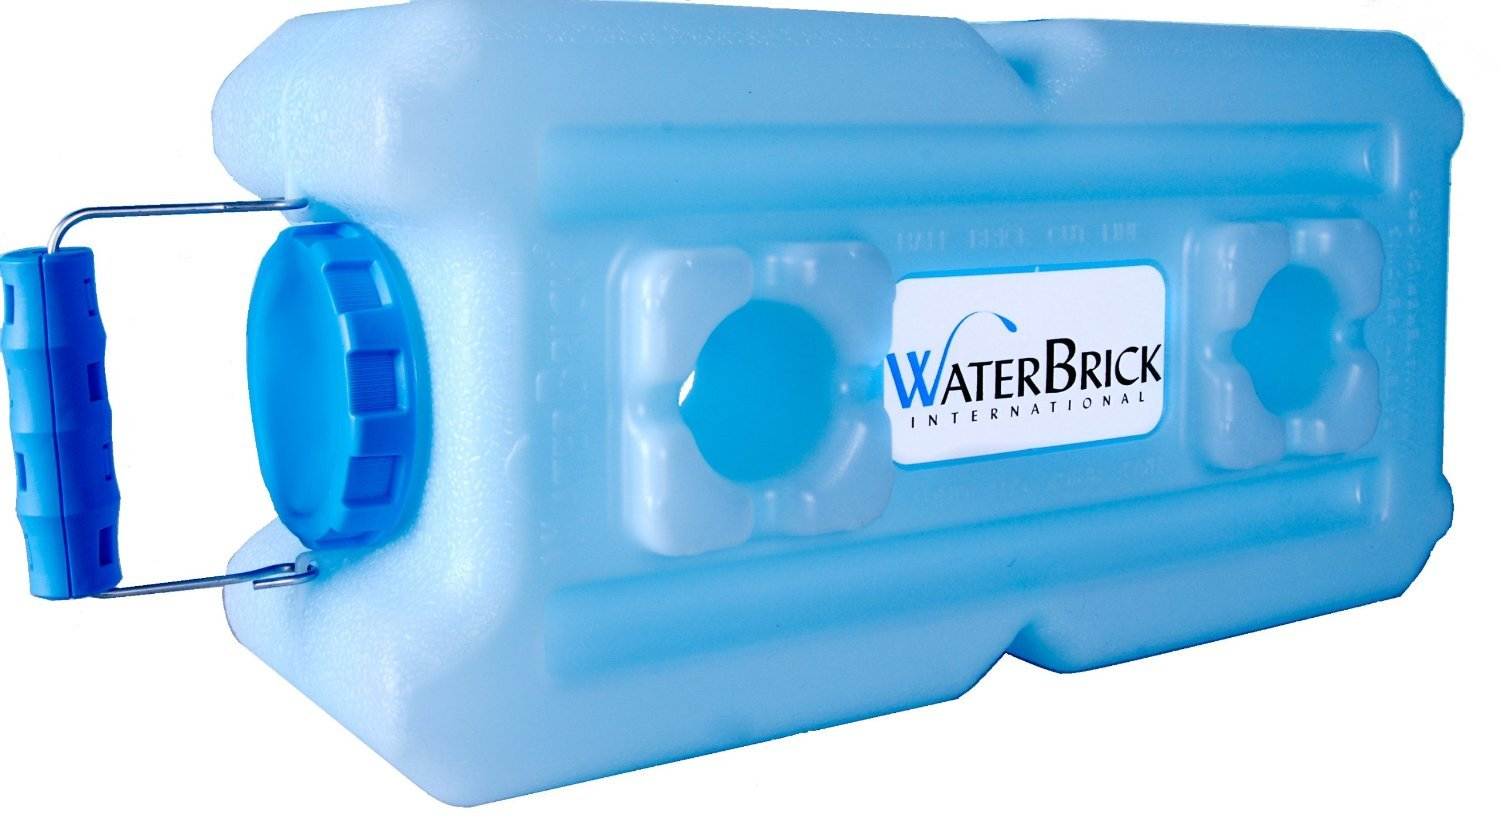 WaterBrick 1833-0001-12 Stackable Water and Food Storage Container, Holds 3.5 gal of Liquids/Up to 27 lb. of Dry Foods, Blue (Pack of 12)